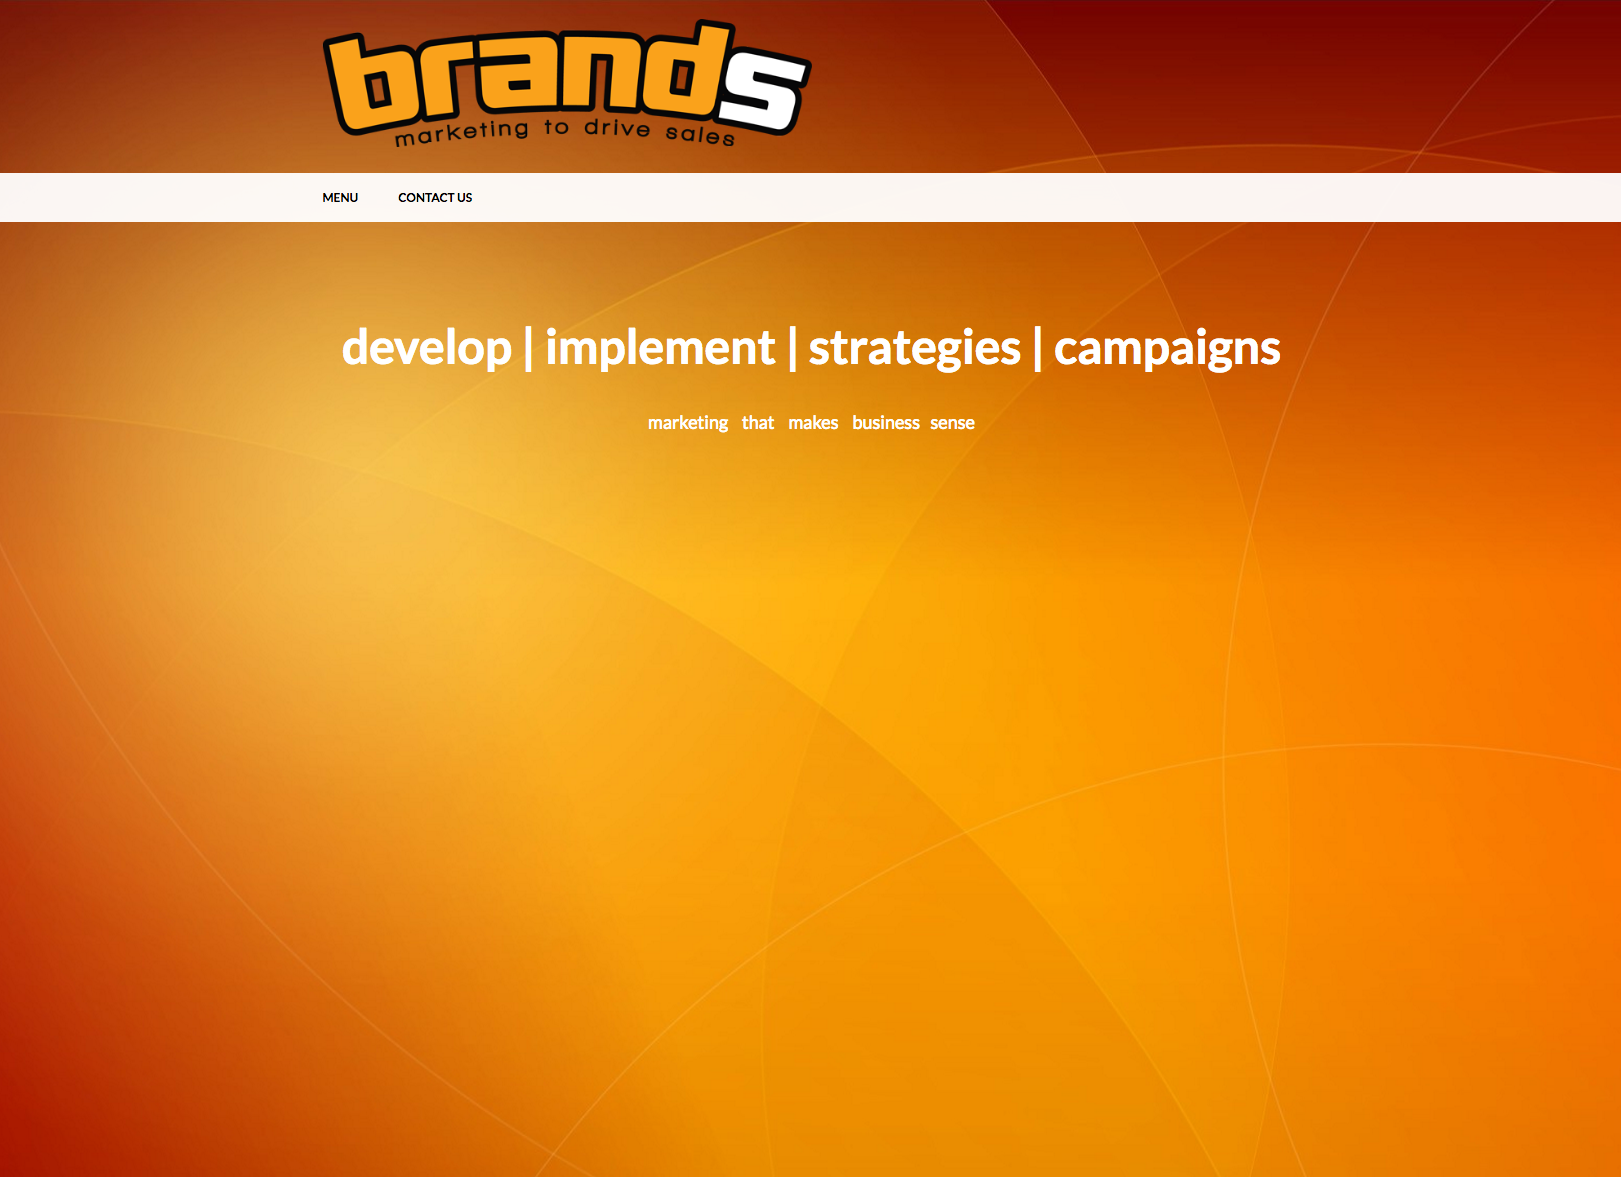 Brands Marketing Website